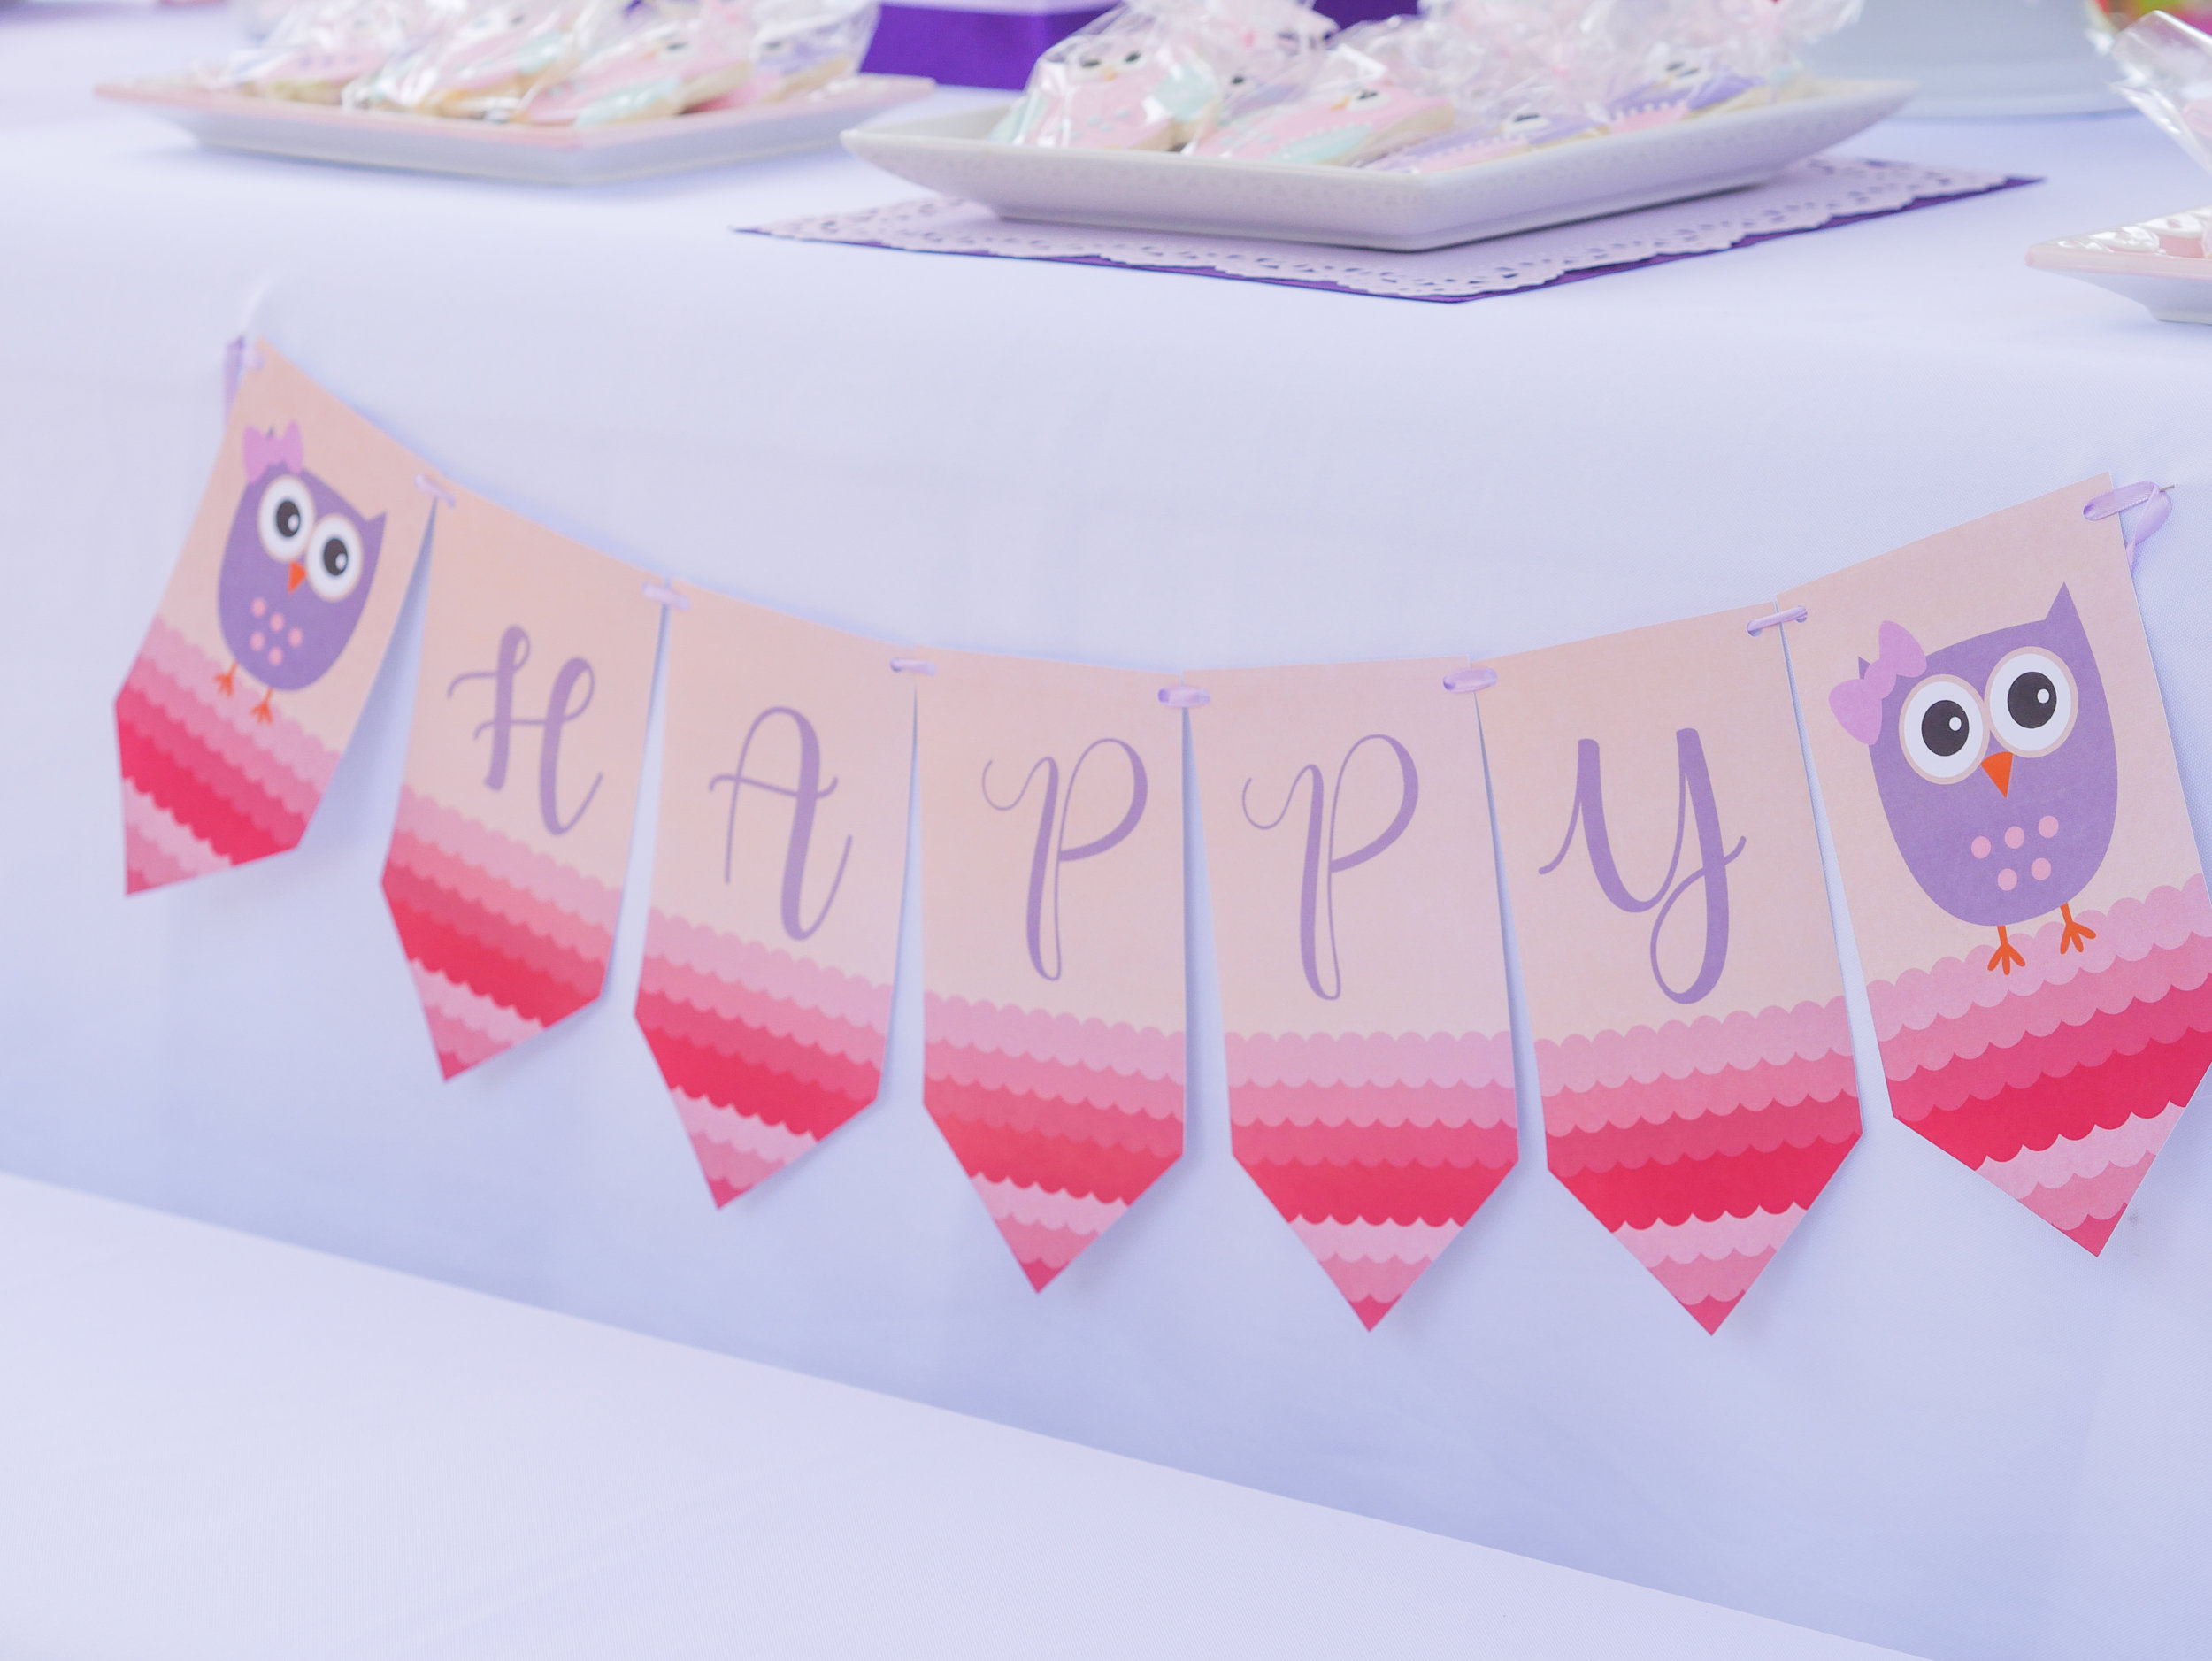 This pink & purple ombre banner really stands out against the white tablecloth. Full details on this birthday party banner can be found on www.minteventdesign.com - it's just one of the many creative party ideas in the Owl First Birthday Party by party stylist Mint Event Design in Austin, Texas. #birthdayparty #partyideas #partyinspiration #owl #firstbirthday #partybanner #birthdaybanner